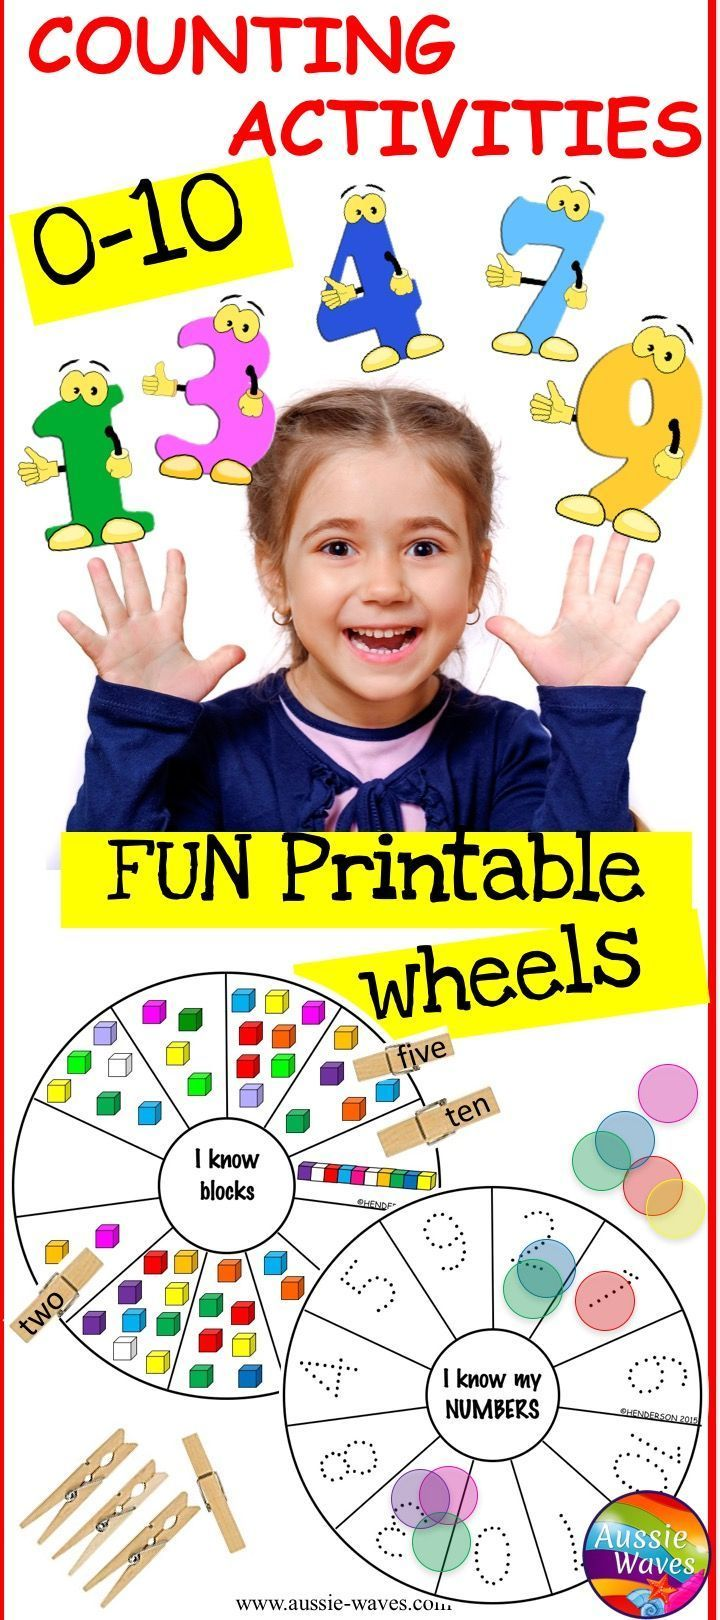 Fun, printable COUNTING ACTIVITIES for preschool and Kinder. Teach kids to count using numbers 0-10